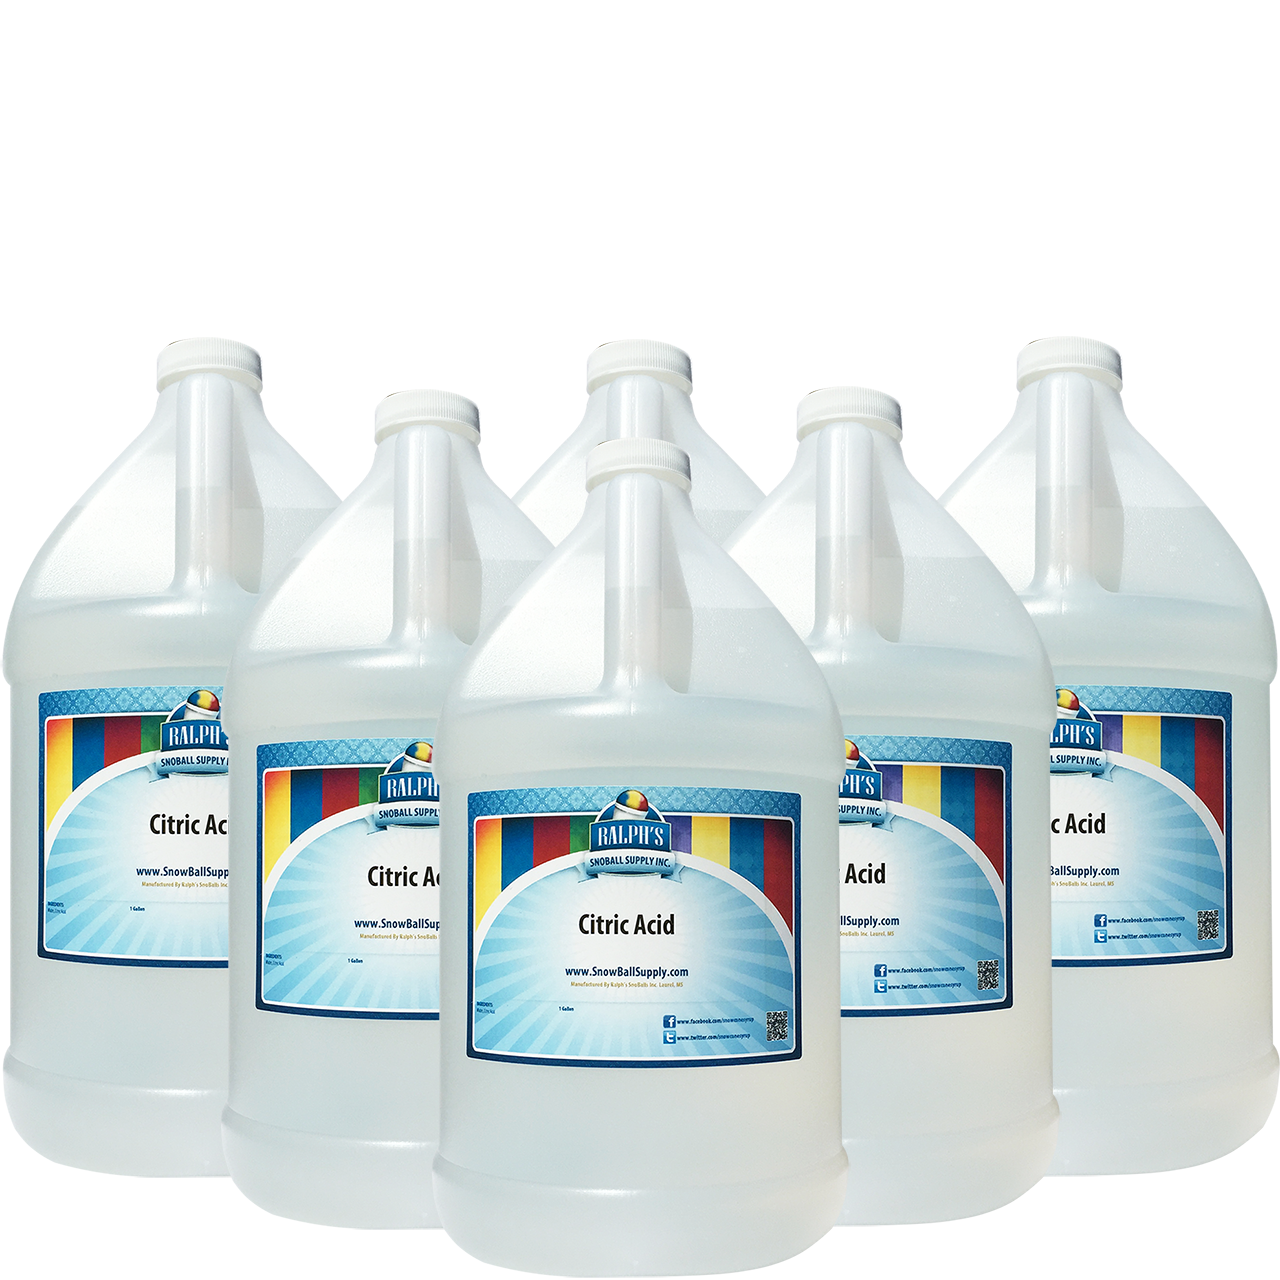 Buy 5 Gallons of Citric Acid Get 1 Free! You Save $18.95